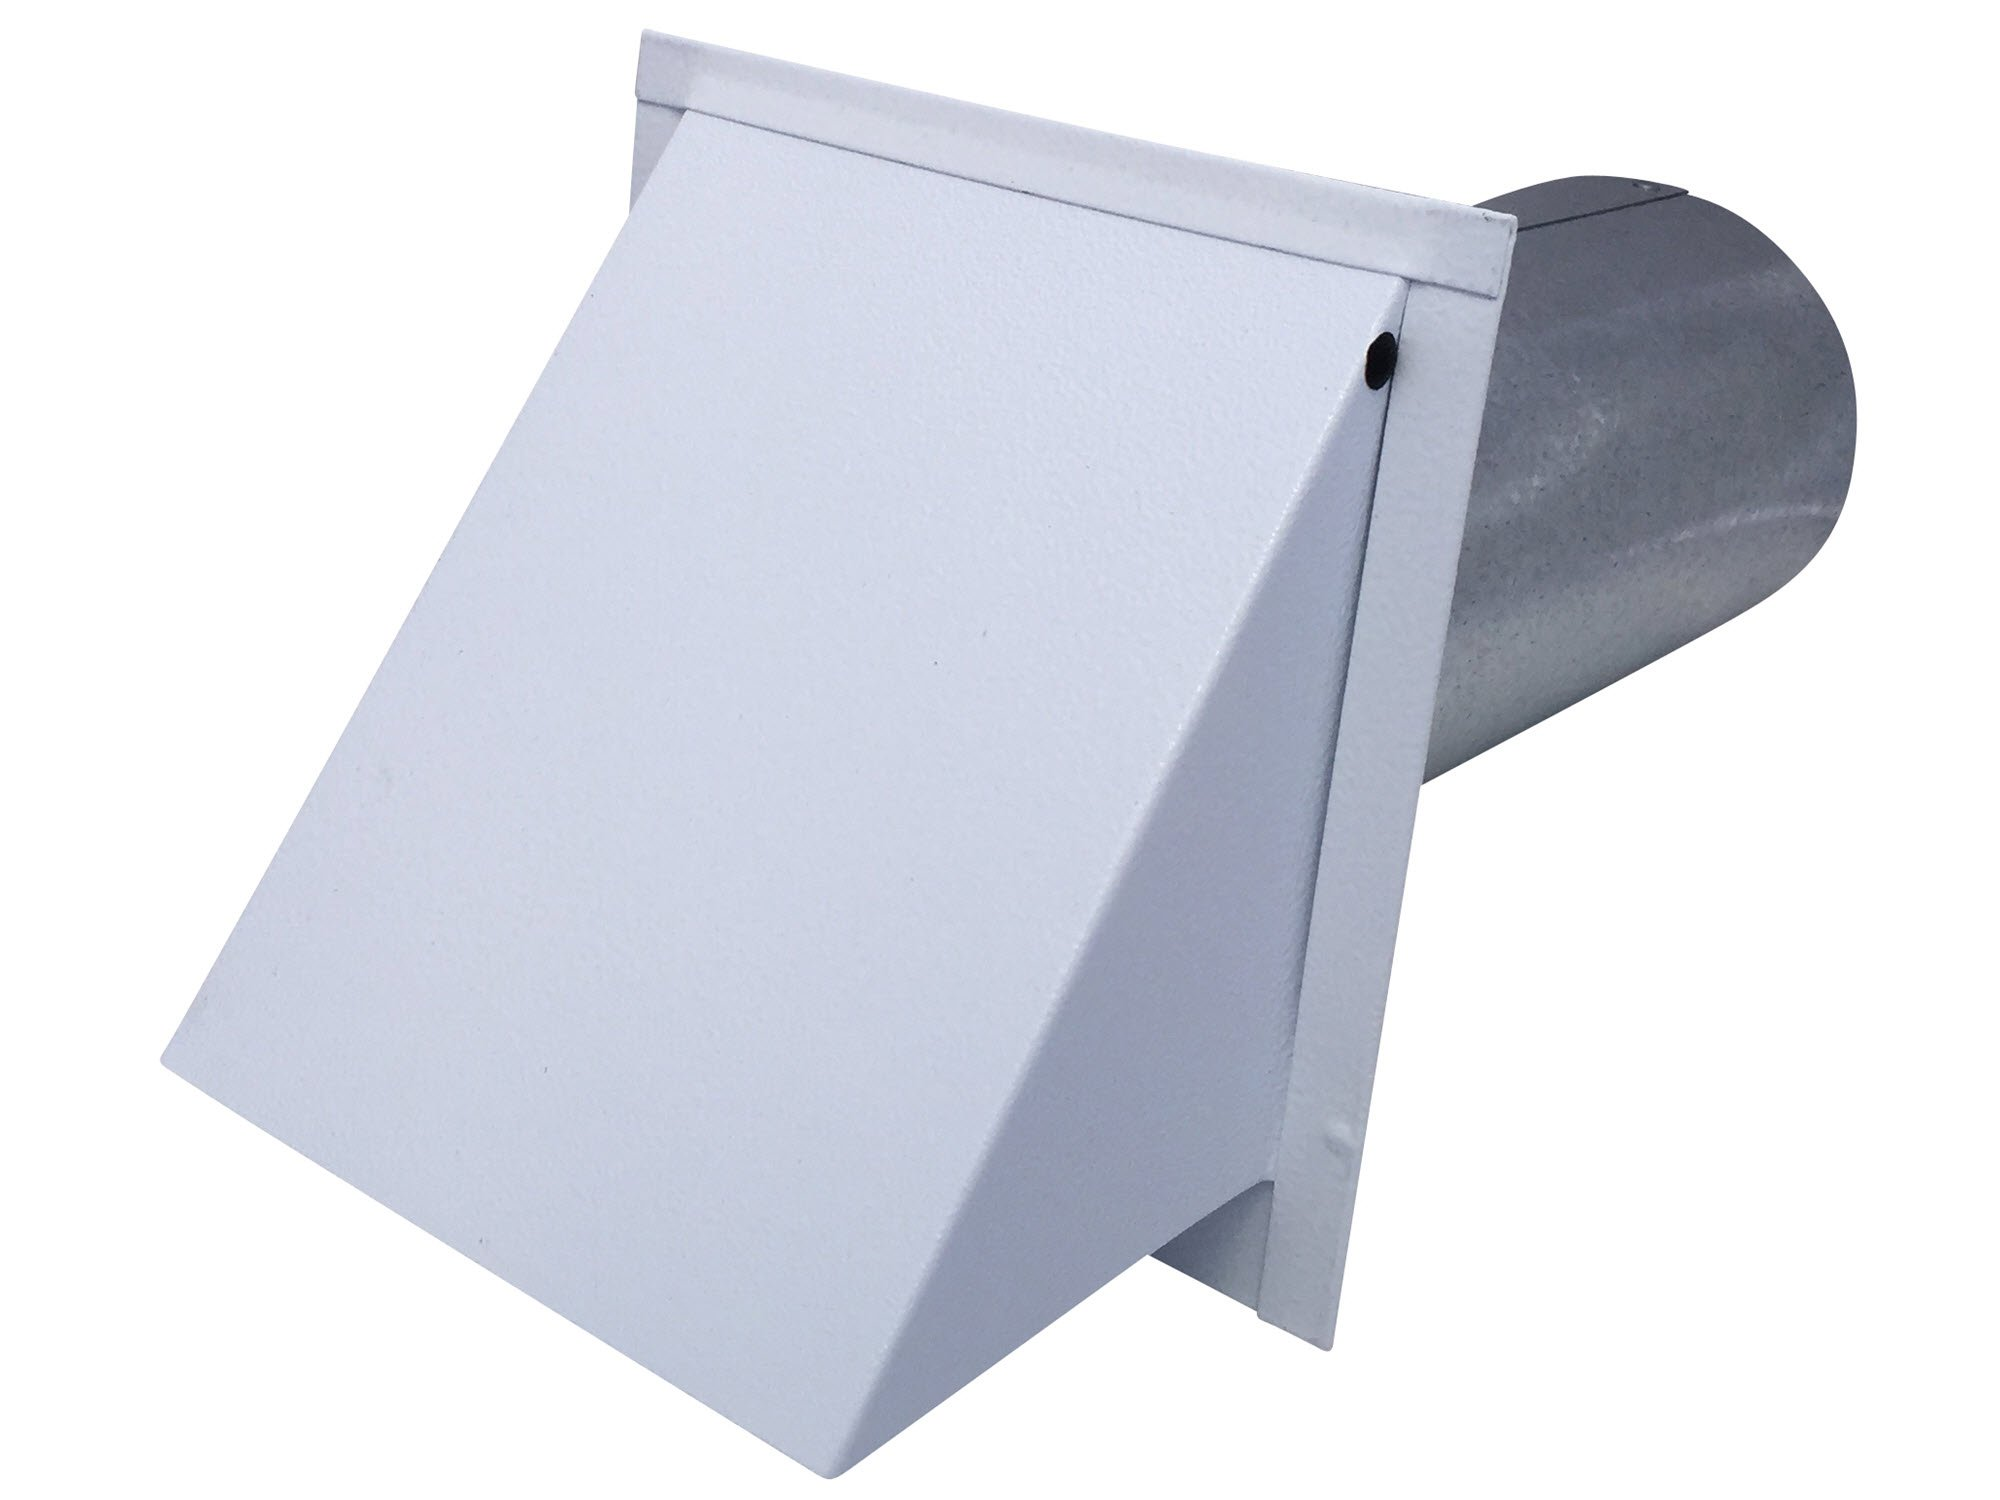 Dryer Wall Vent White Powder Coated Steel (Standard 4 Inch Diameter Exhaust) - Vent Works by Vent Works (Image #1)